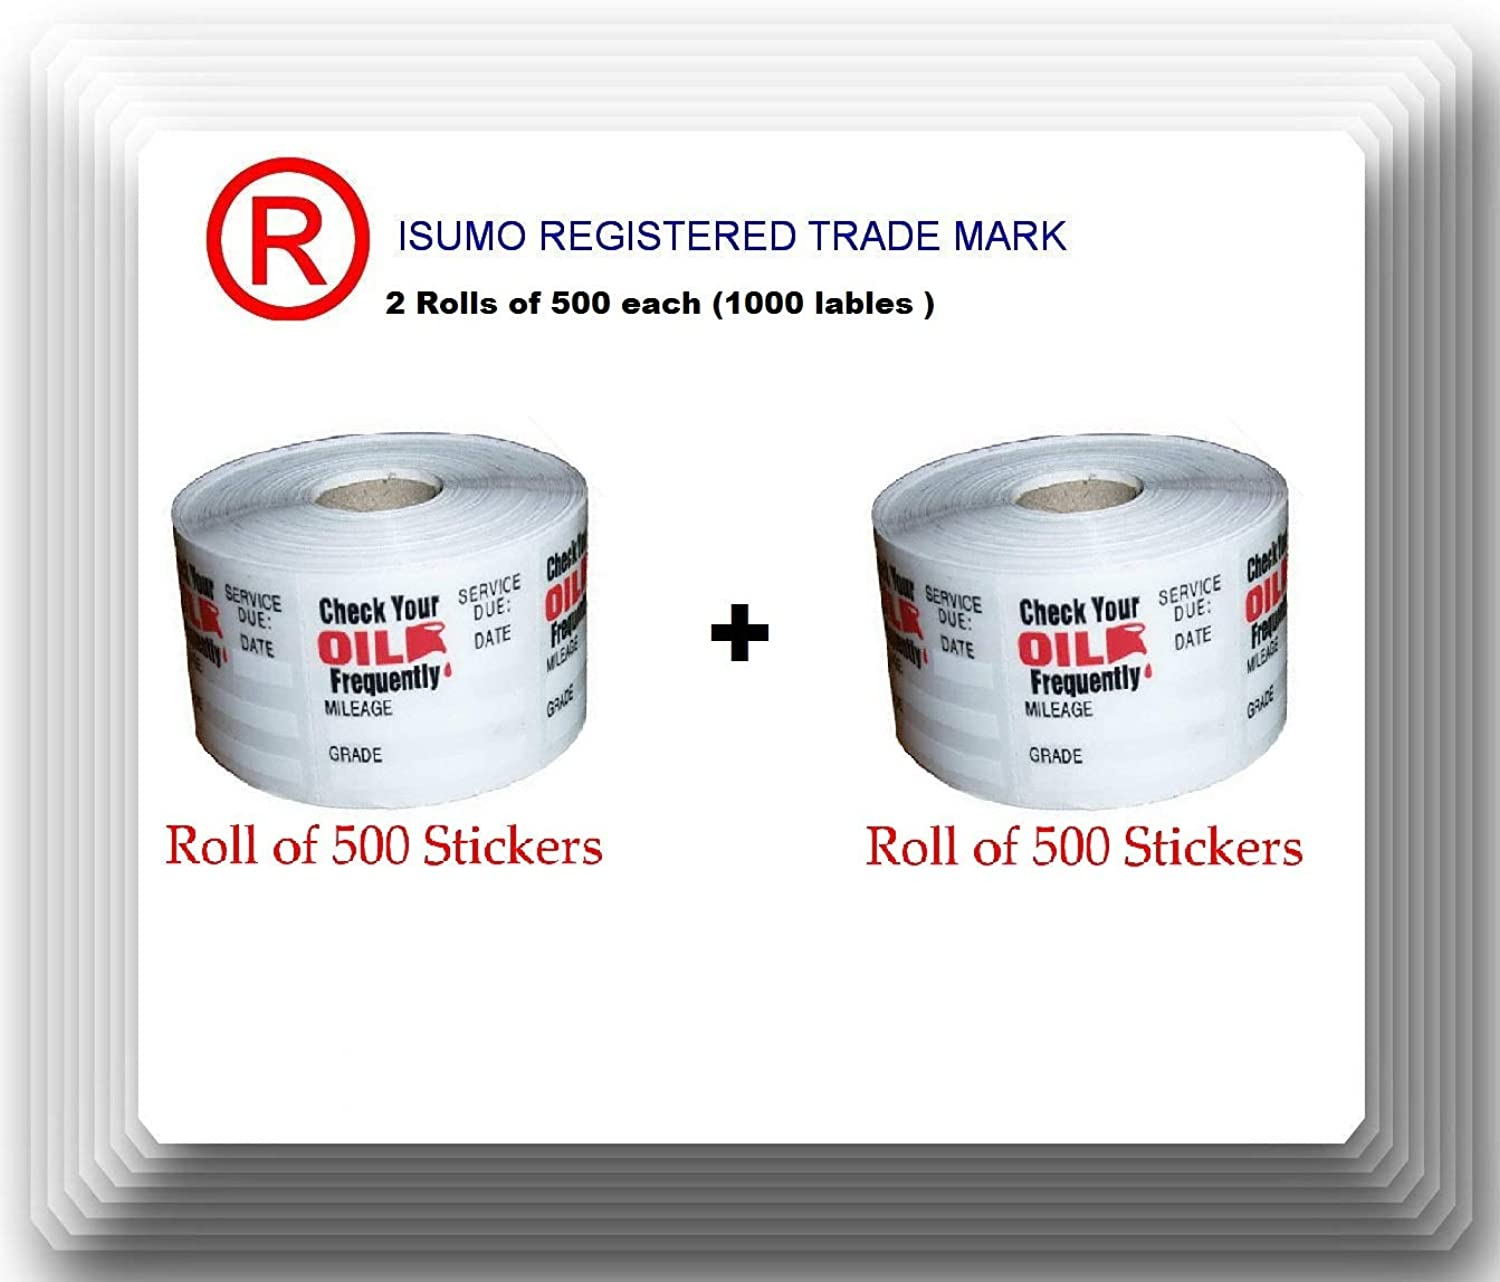 ISUMO 2 Rolls of 500 Each. Oil Change Service Reminder Stickers 1000 Stickers Quality Guaranteed (1 Roll of 500 Stickers) (2)